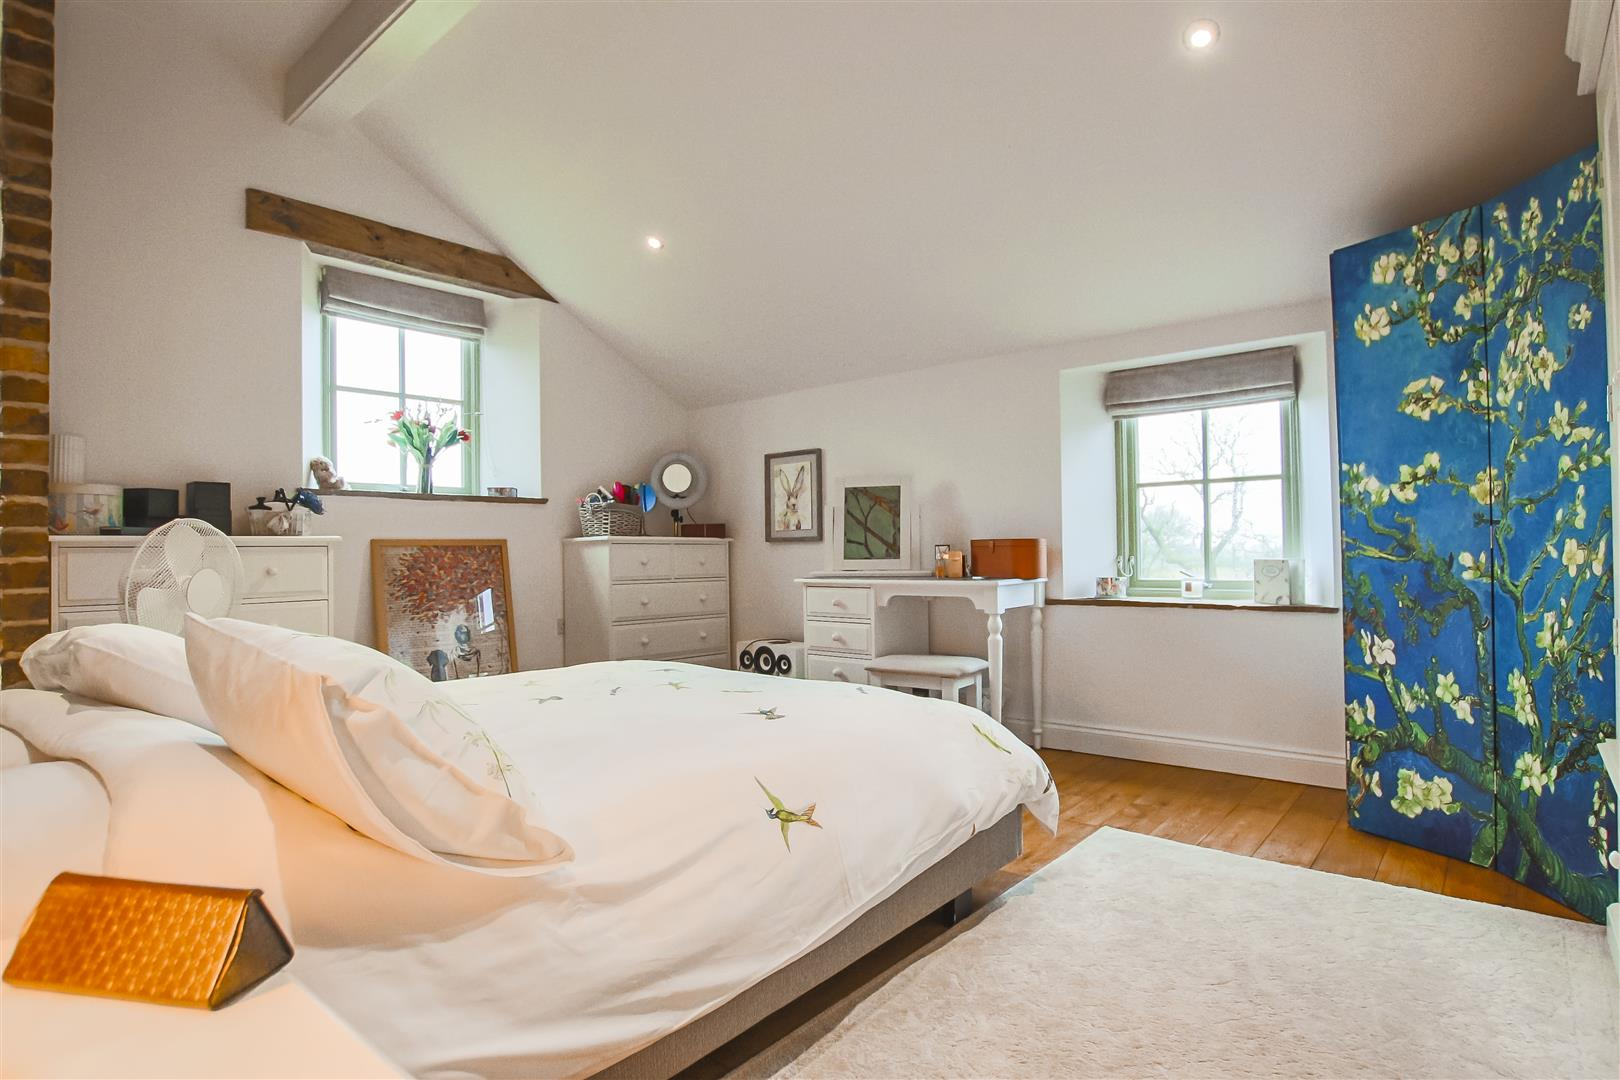 4 Bedroom Barn Conversion For Sale - Bedroom 1